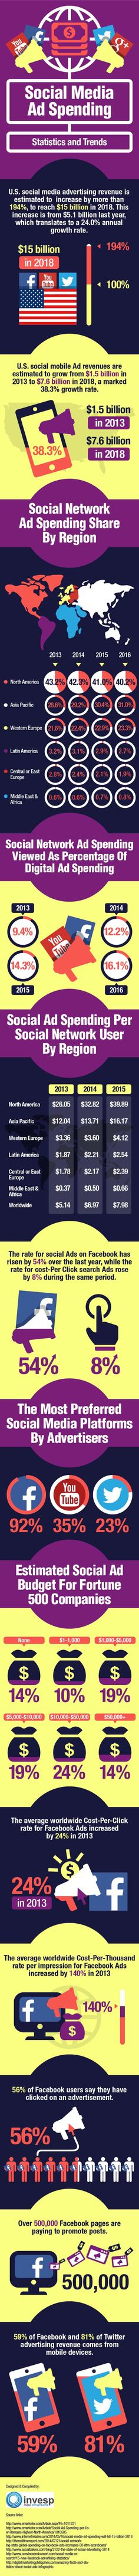 Social media #ad spending is expected to grow significantly in coming years. #socialads